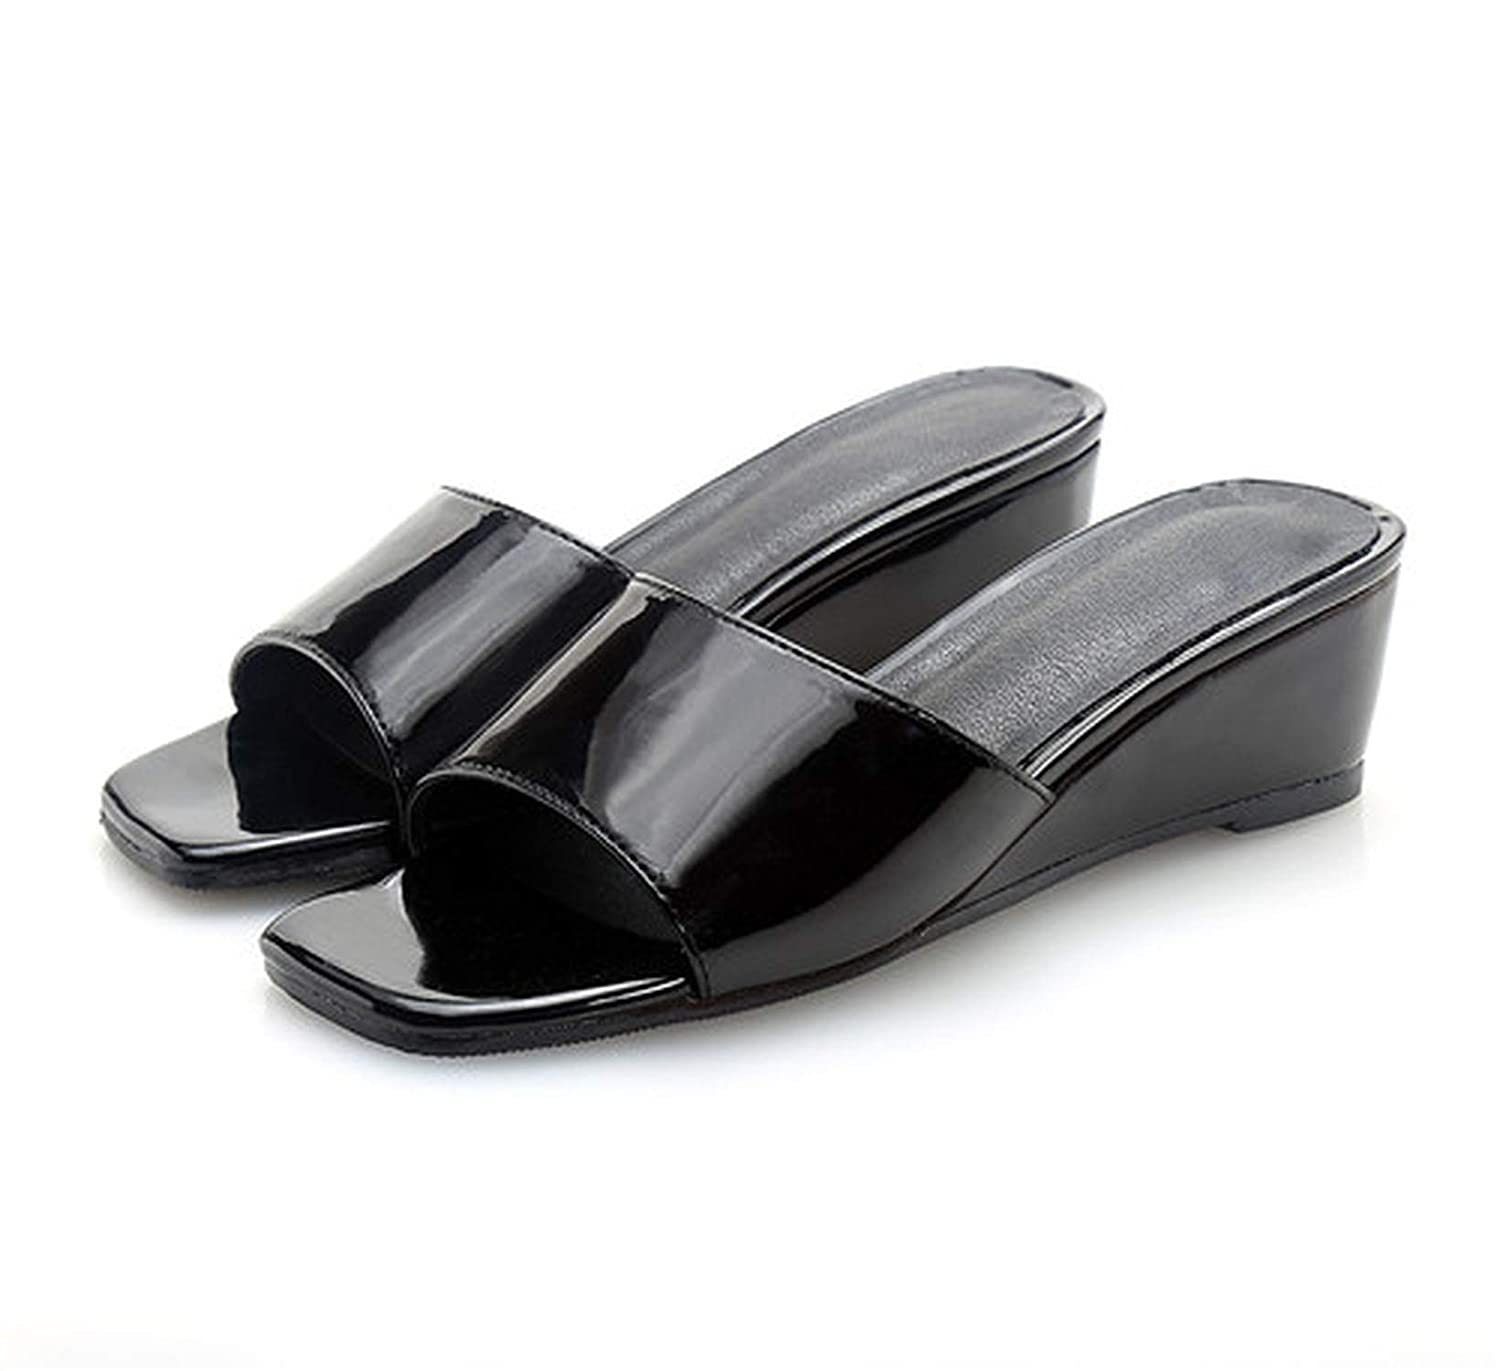 3 goldsmyth Black Low Slippers Summer Ladies New Leather Wedge Heel Outside Slides Flat Sandals